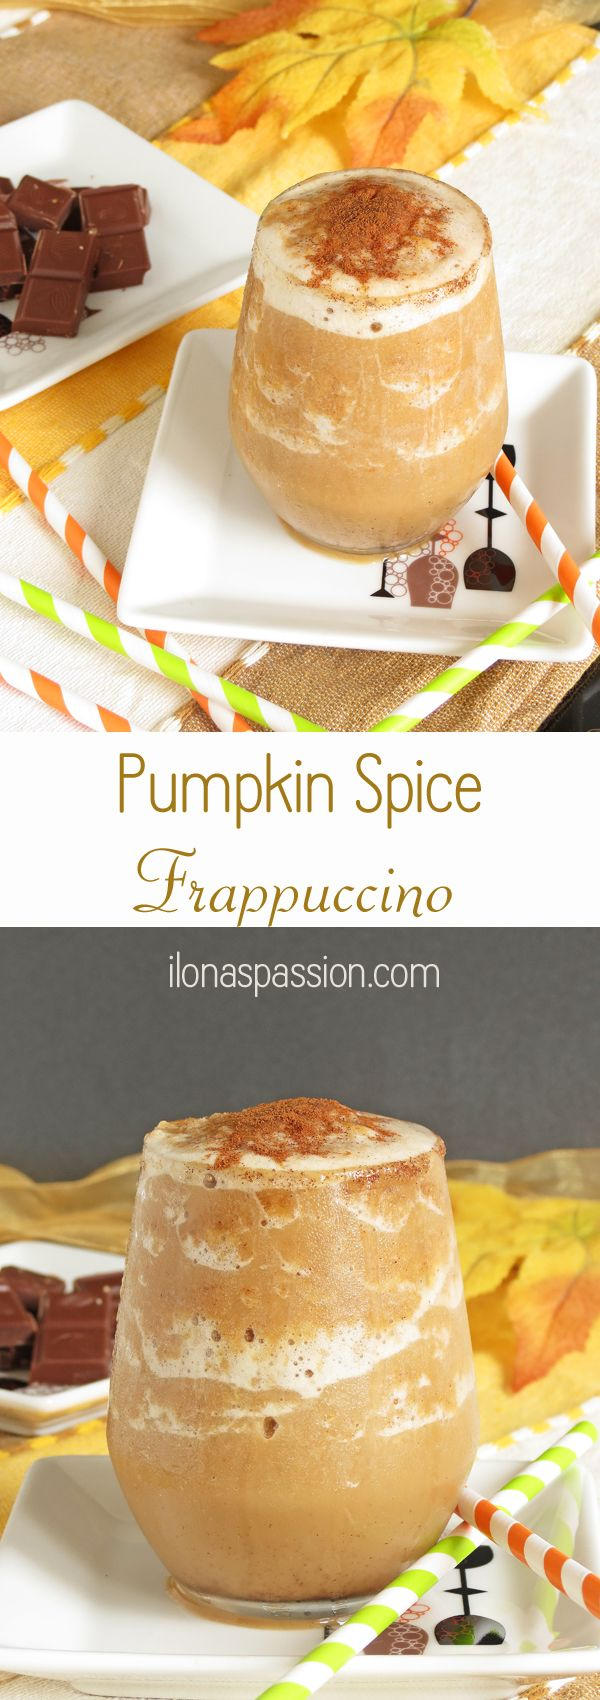 Vegan and Skinny Pumpkin Spice Frappuccino...